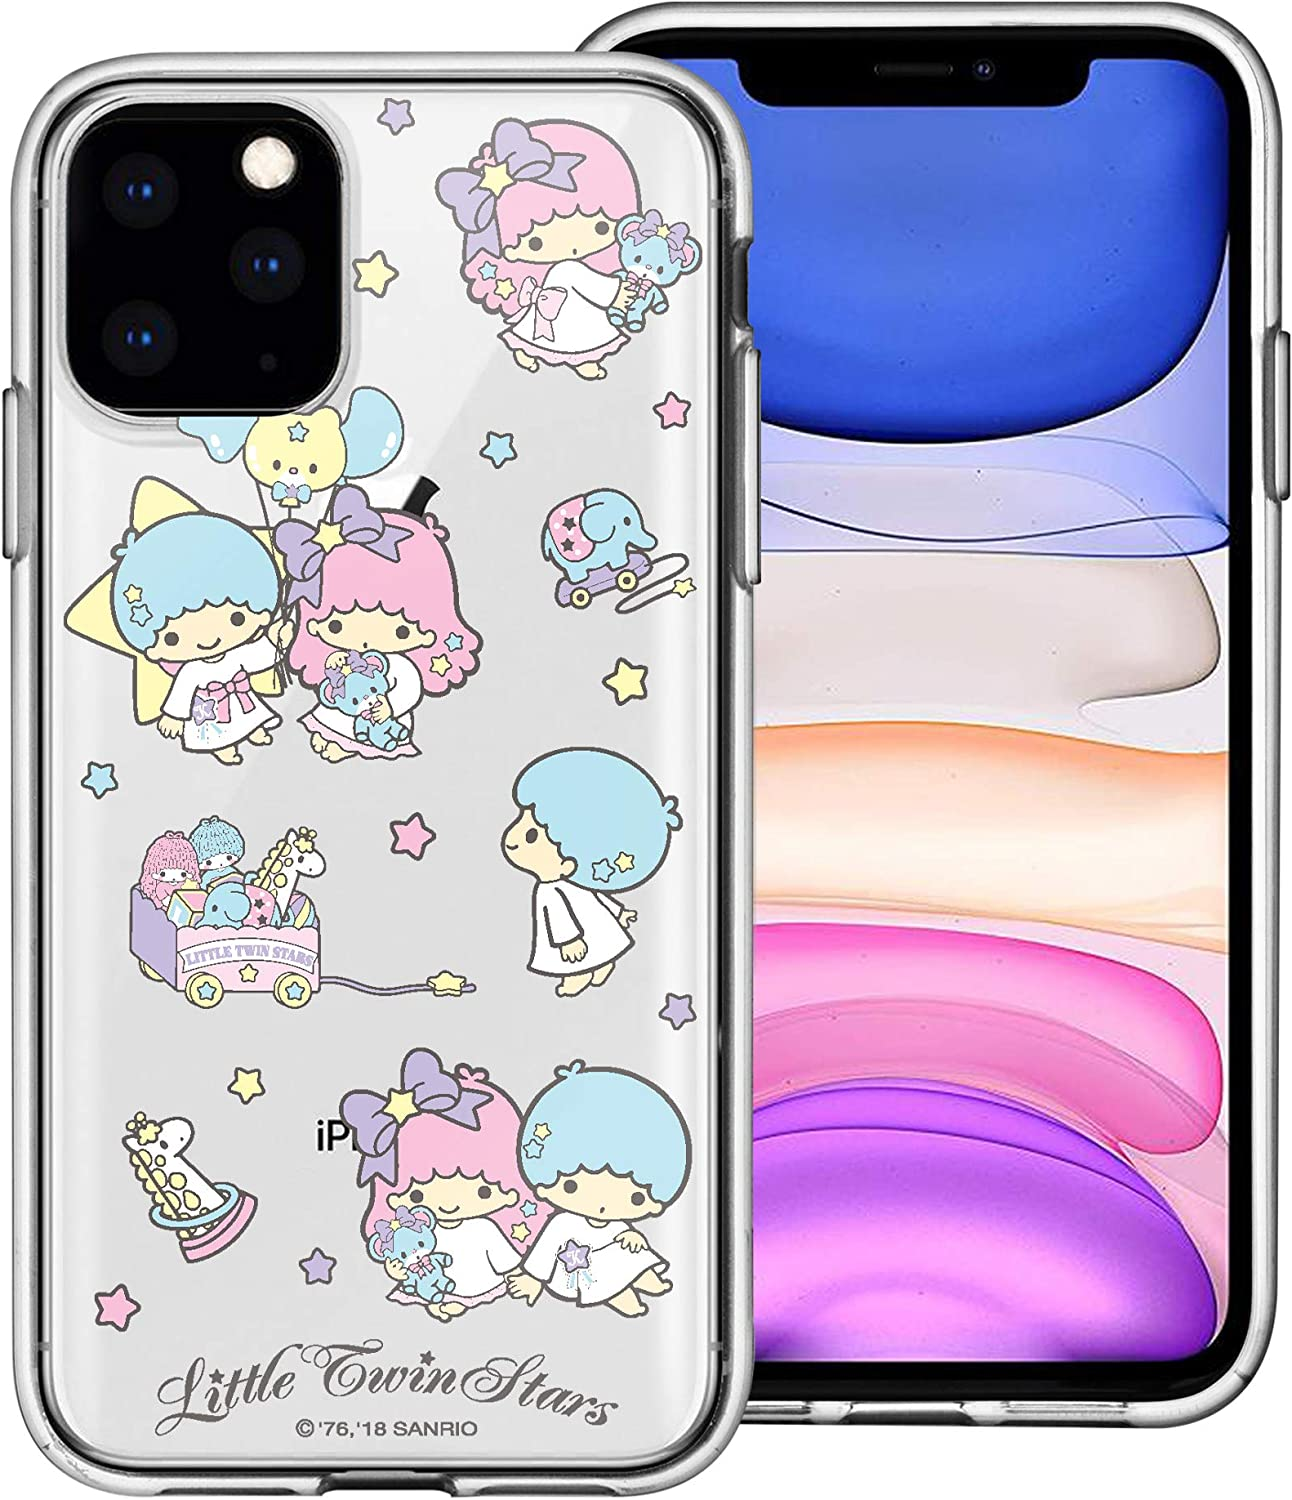 WiLLBee Compatible with iPhone 12 Pro Max Case (6.7inch) Sanrio Cute Border Clear Jelly Cover - Play Little Twin Stars